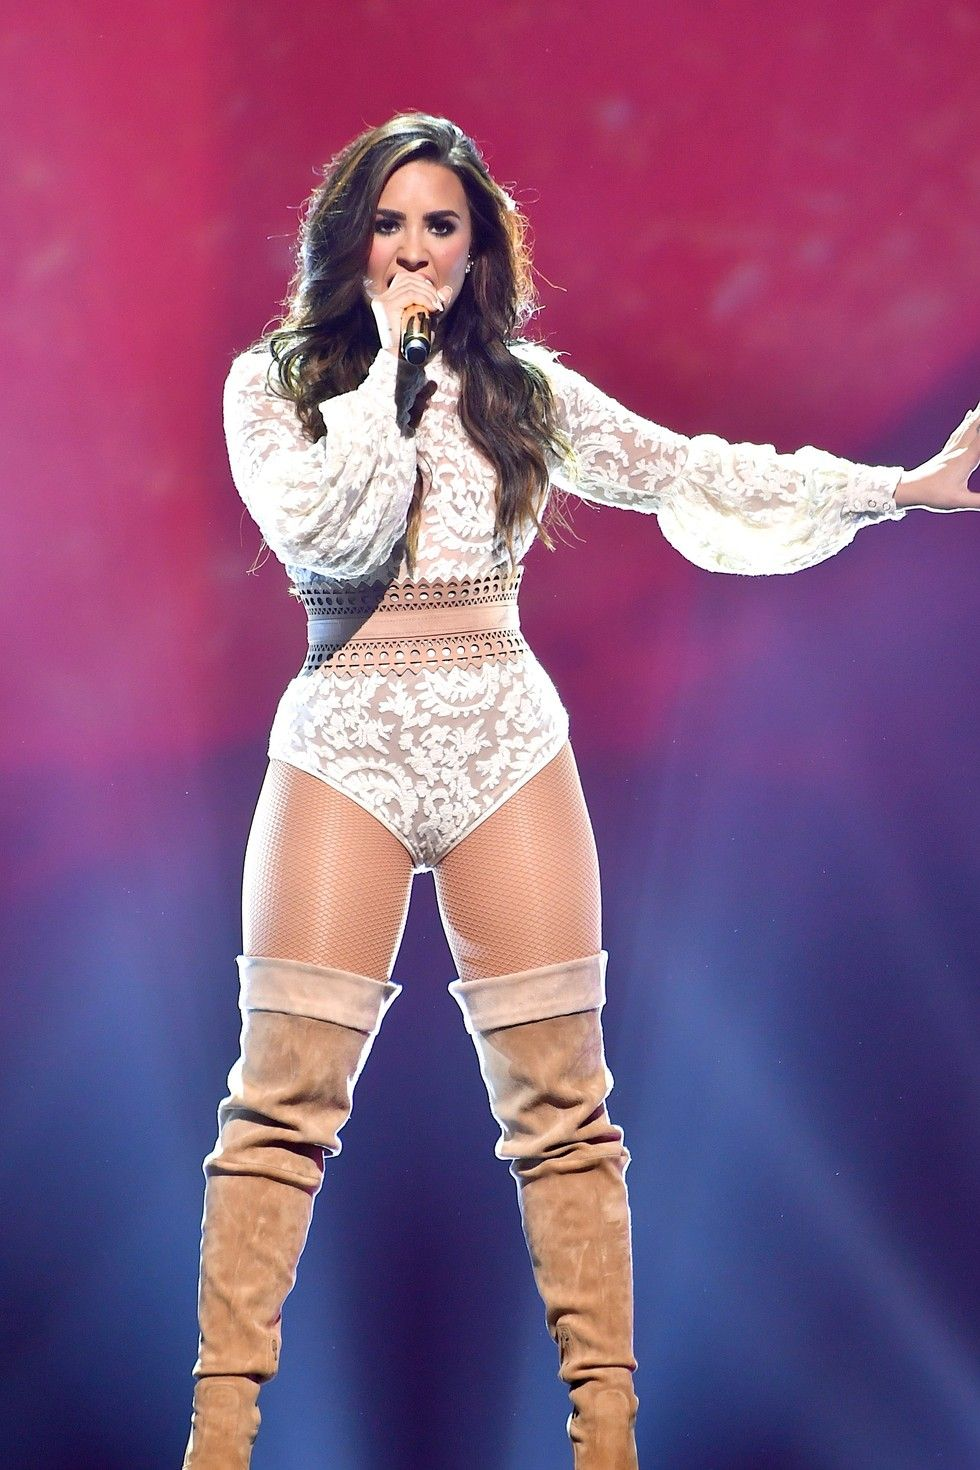 Demi Lovato Takes The Stage In Nothing But A Lace Bodysuit